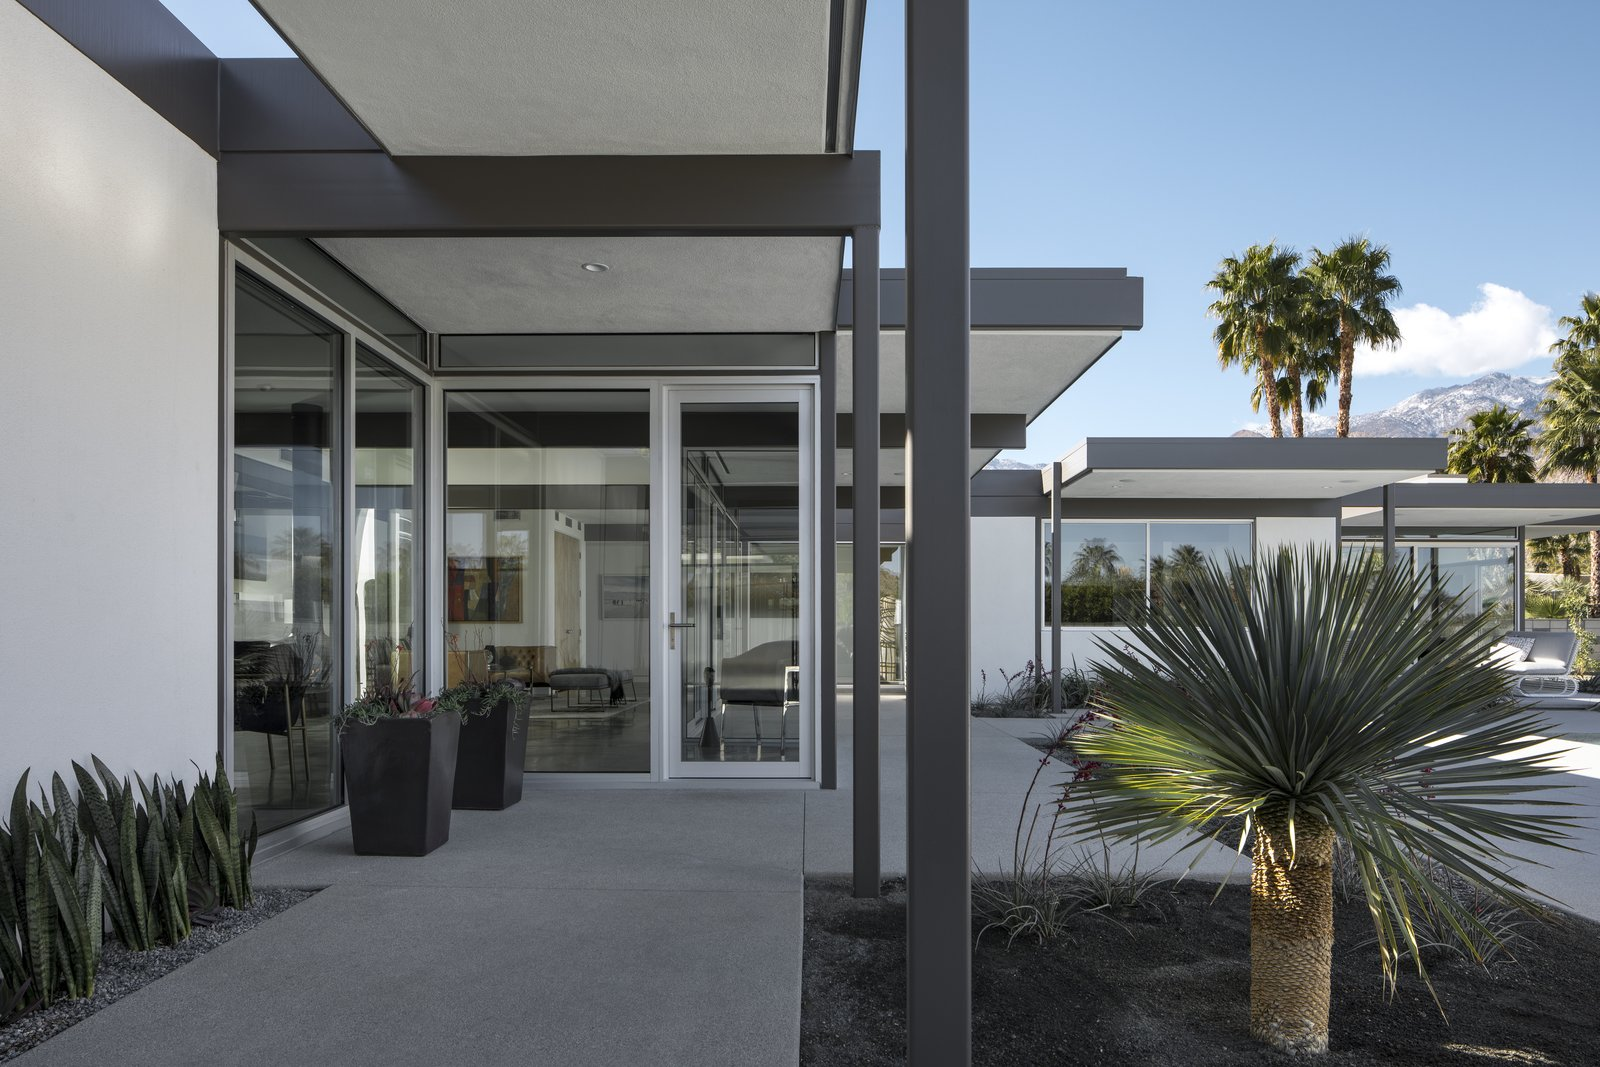 The steel post and beam structural components frame entry ways and circulation.